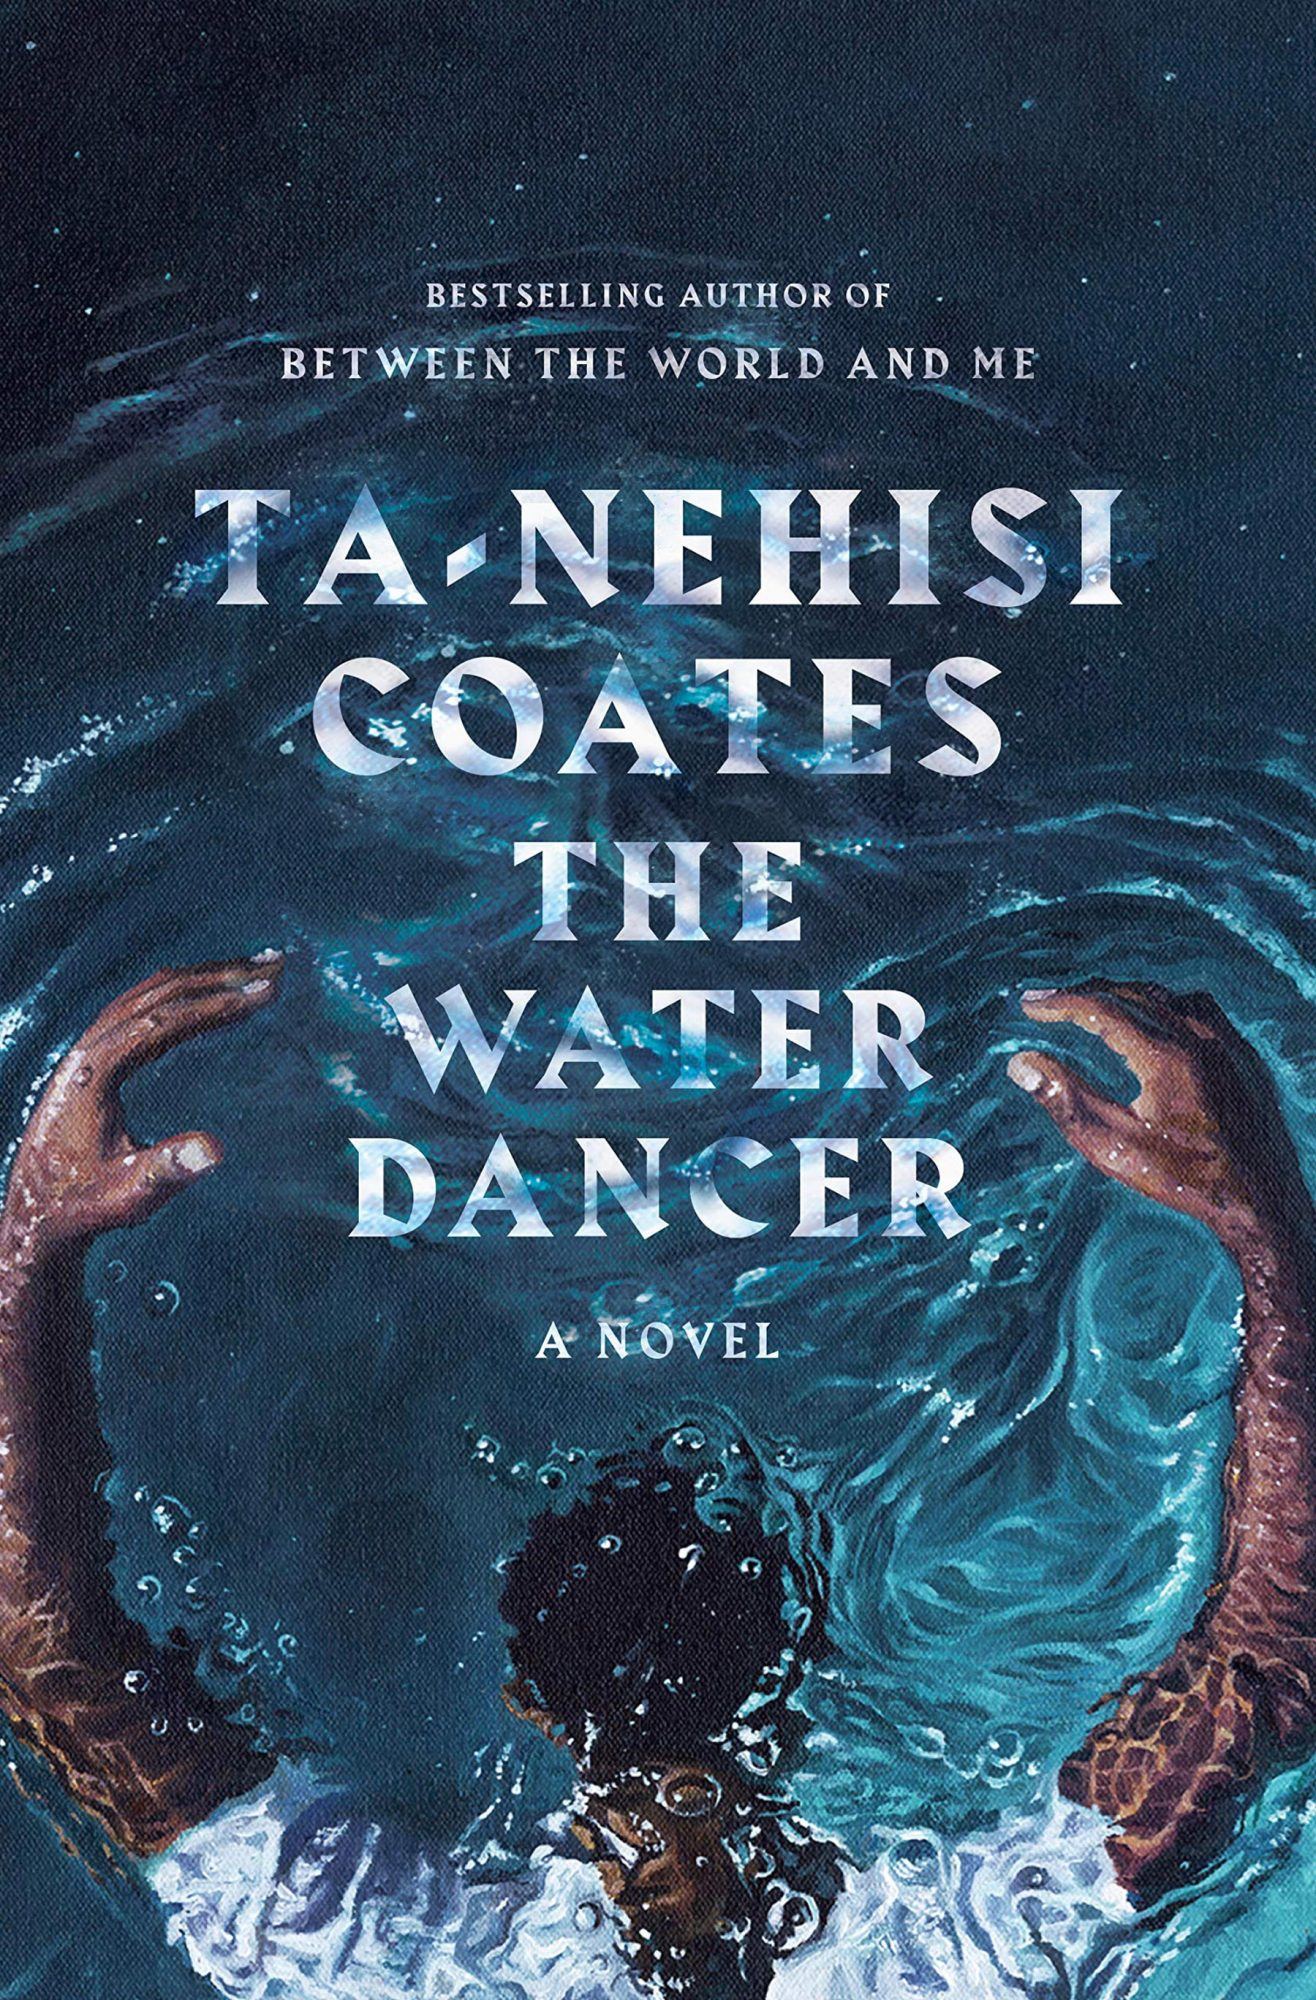 The Water Dancer by Ta-Nehisi CoatesPublisher: One World